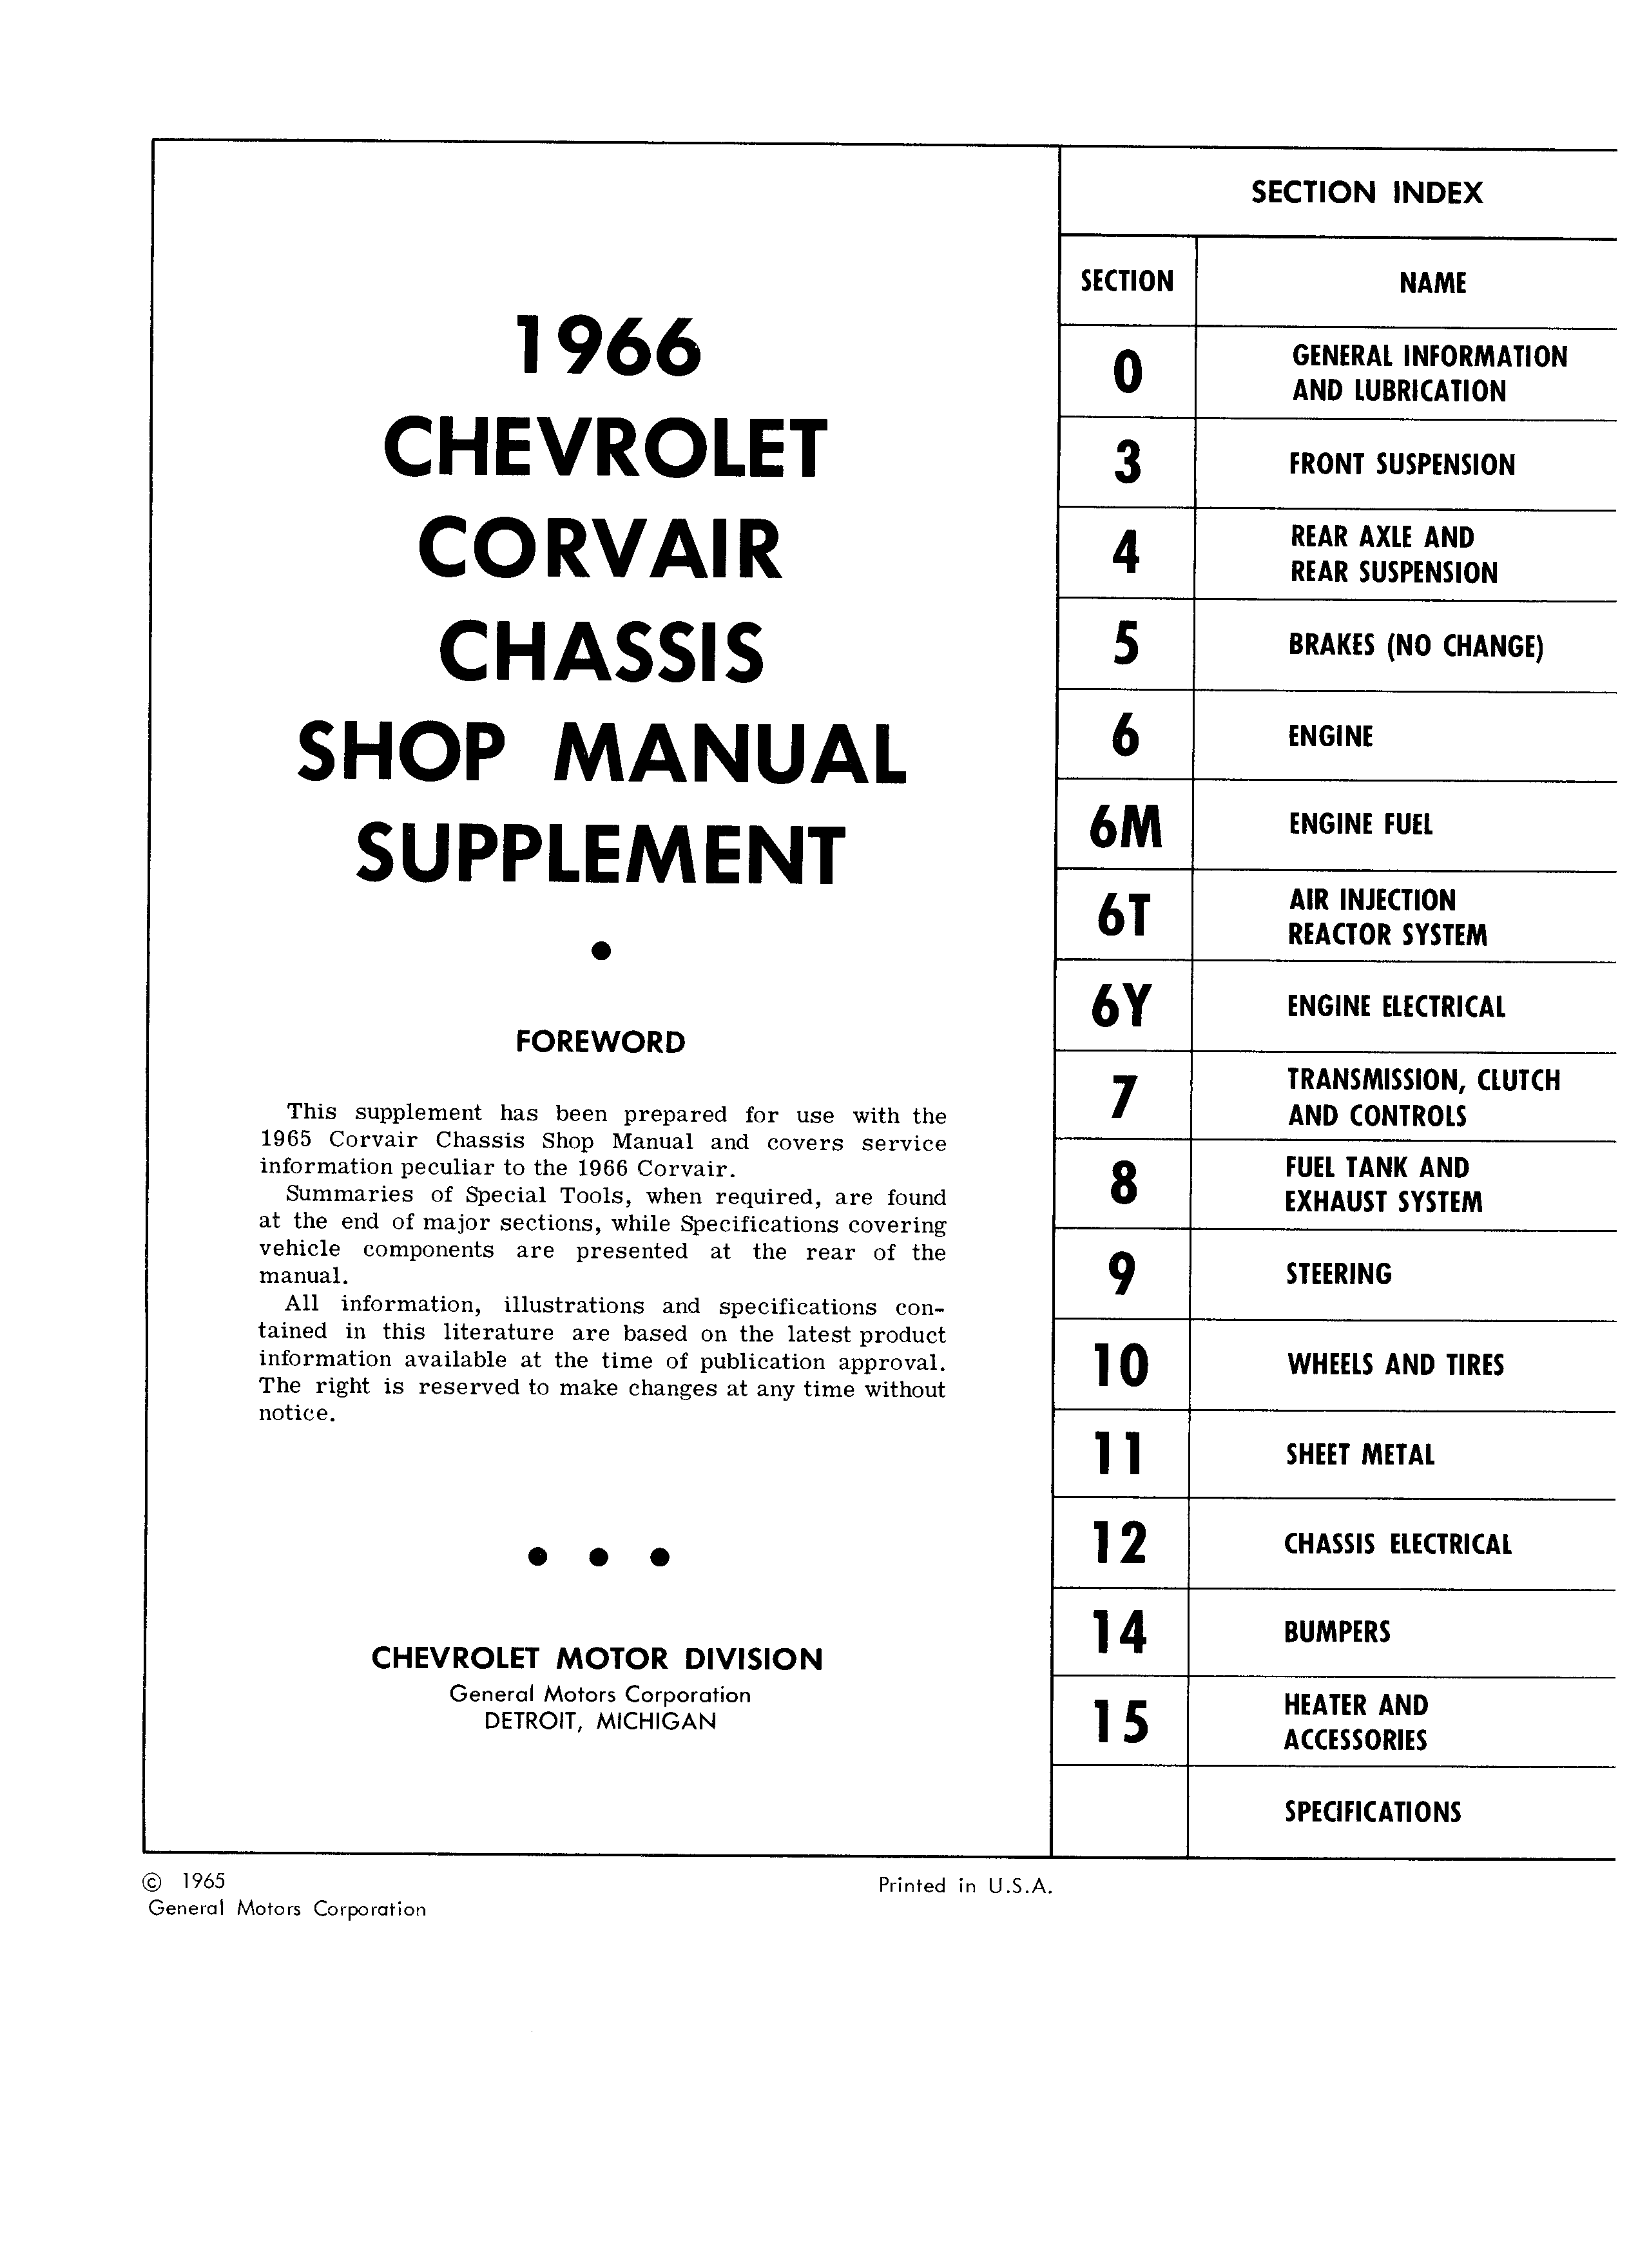 Corvair Chassis Shop Manual Supplement December 1965